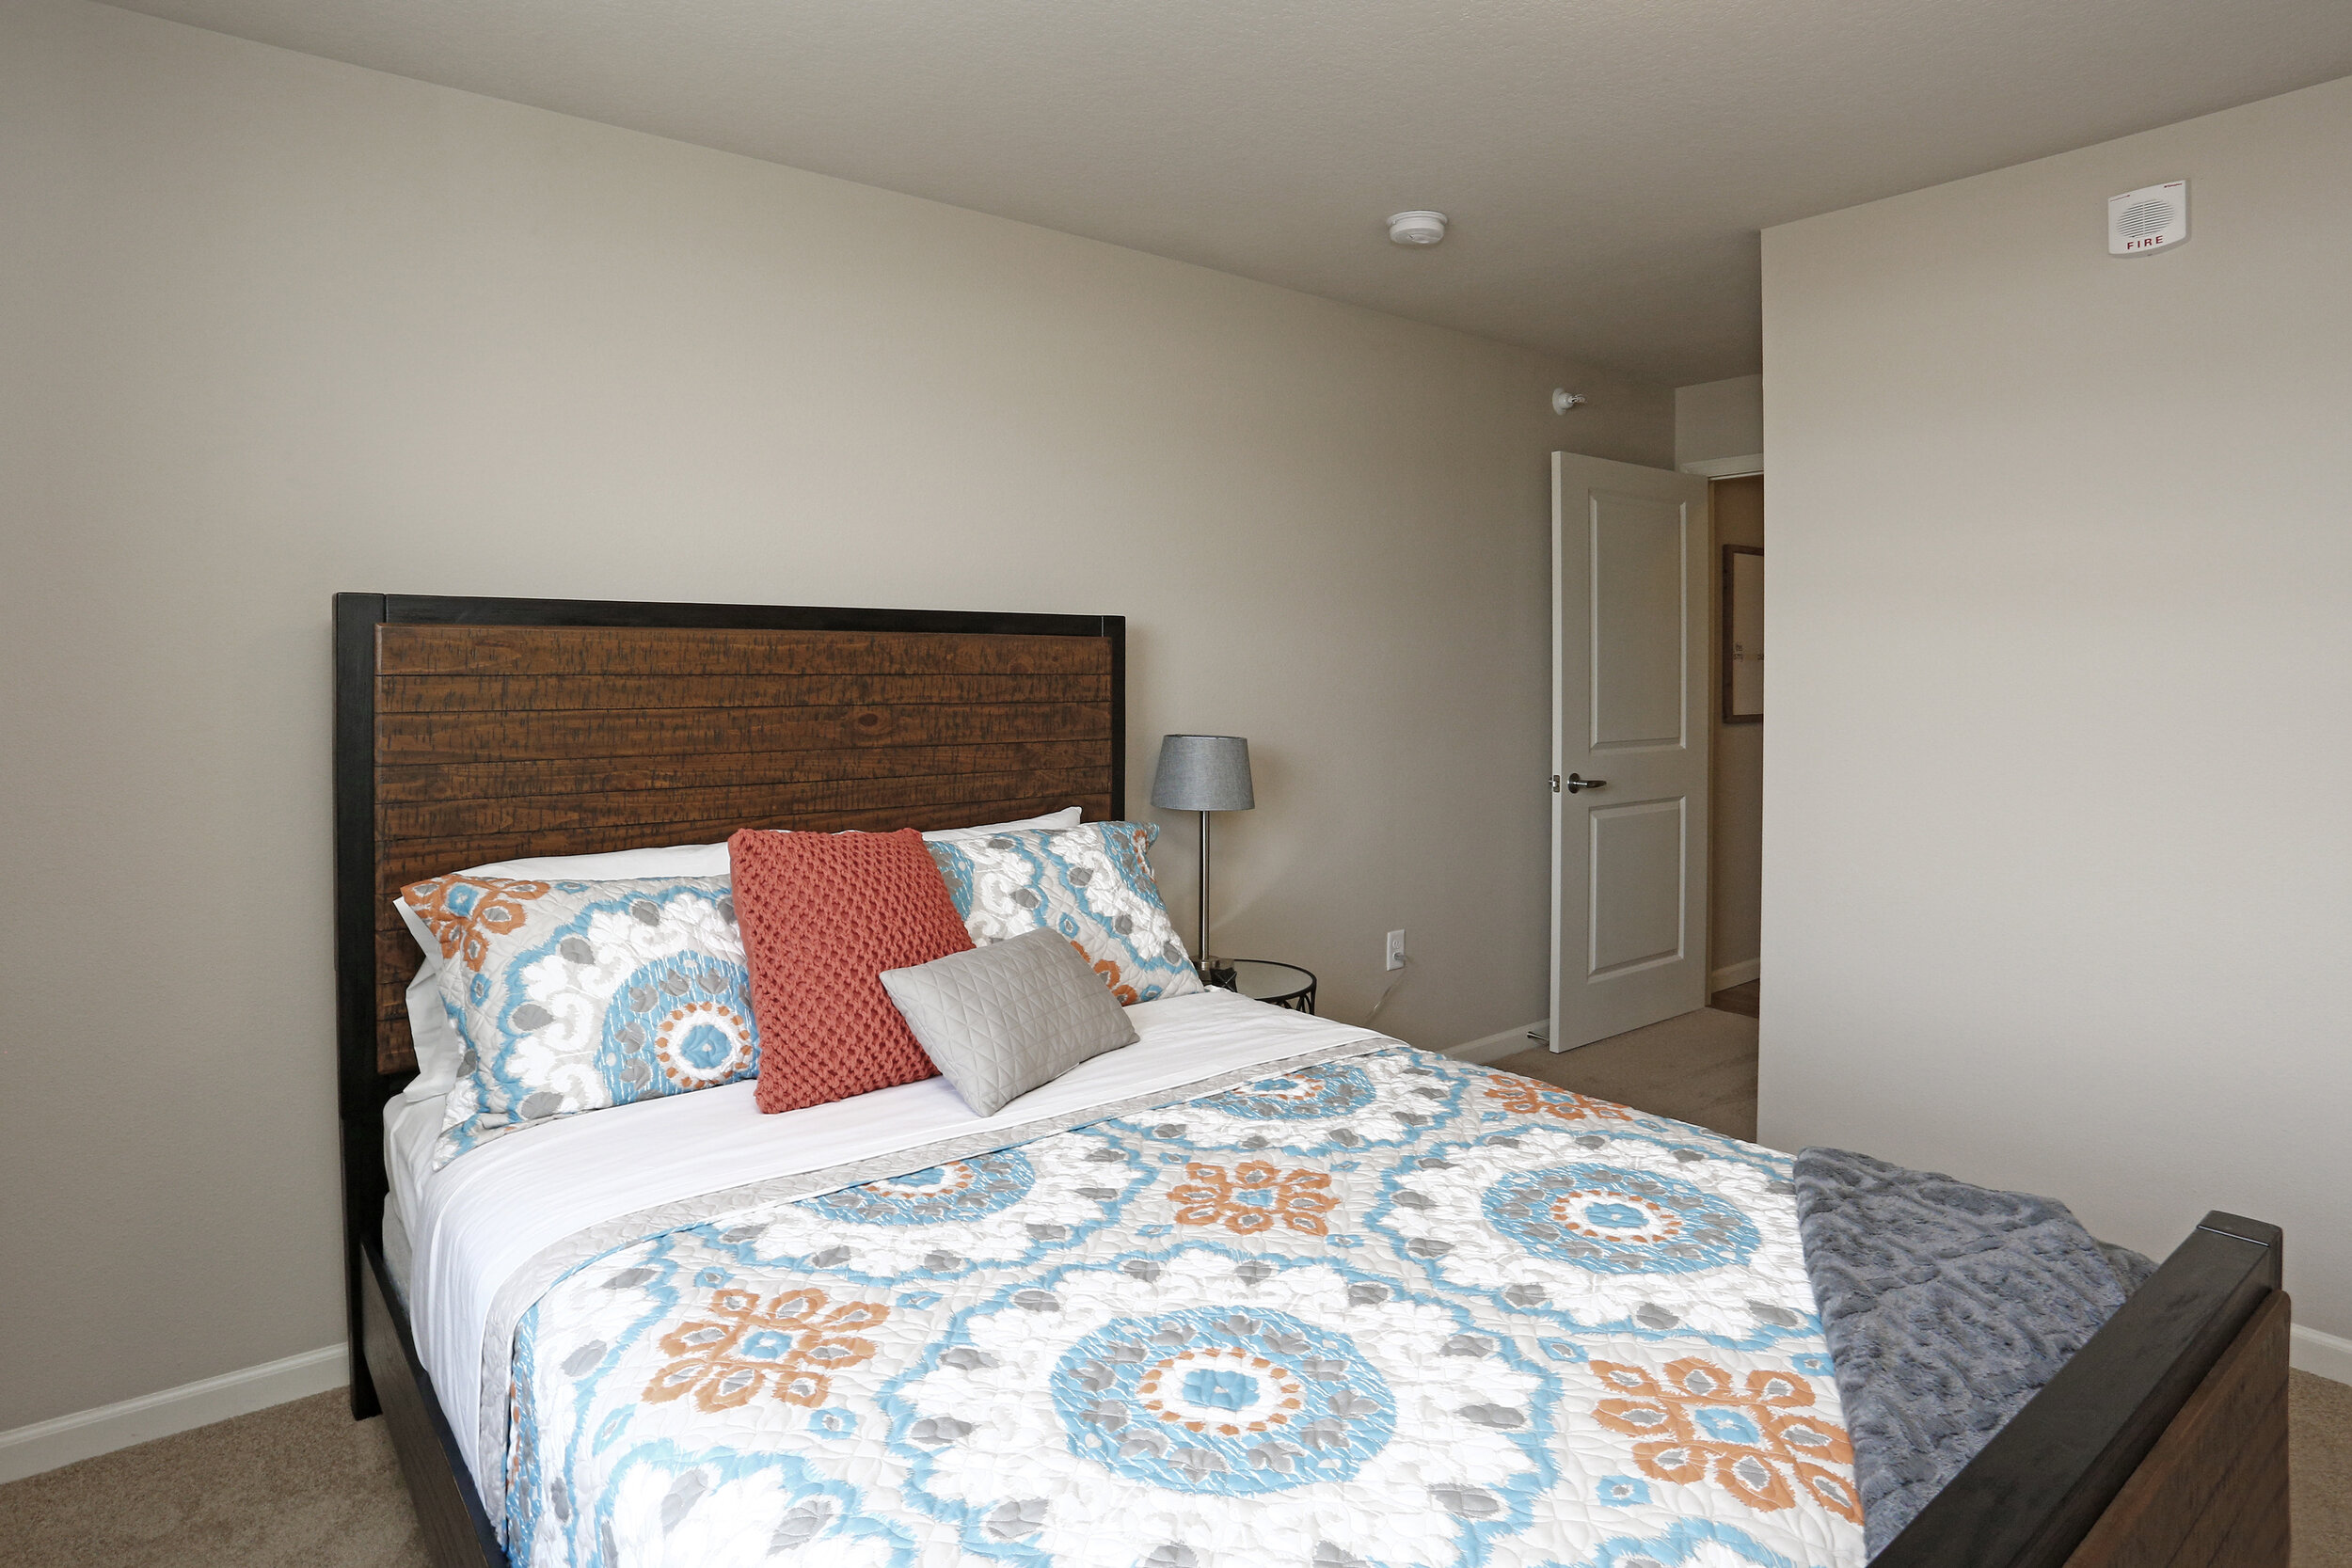 04 Spacious Bedrooms with Walk-In Closests.jpg